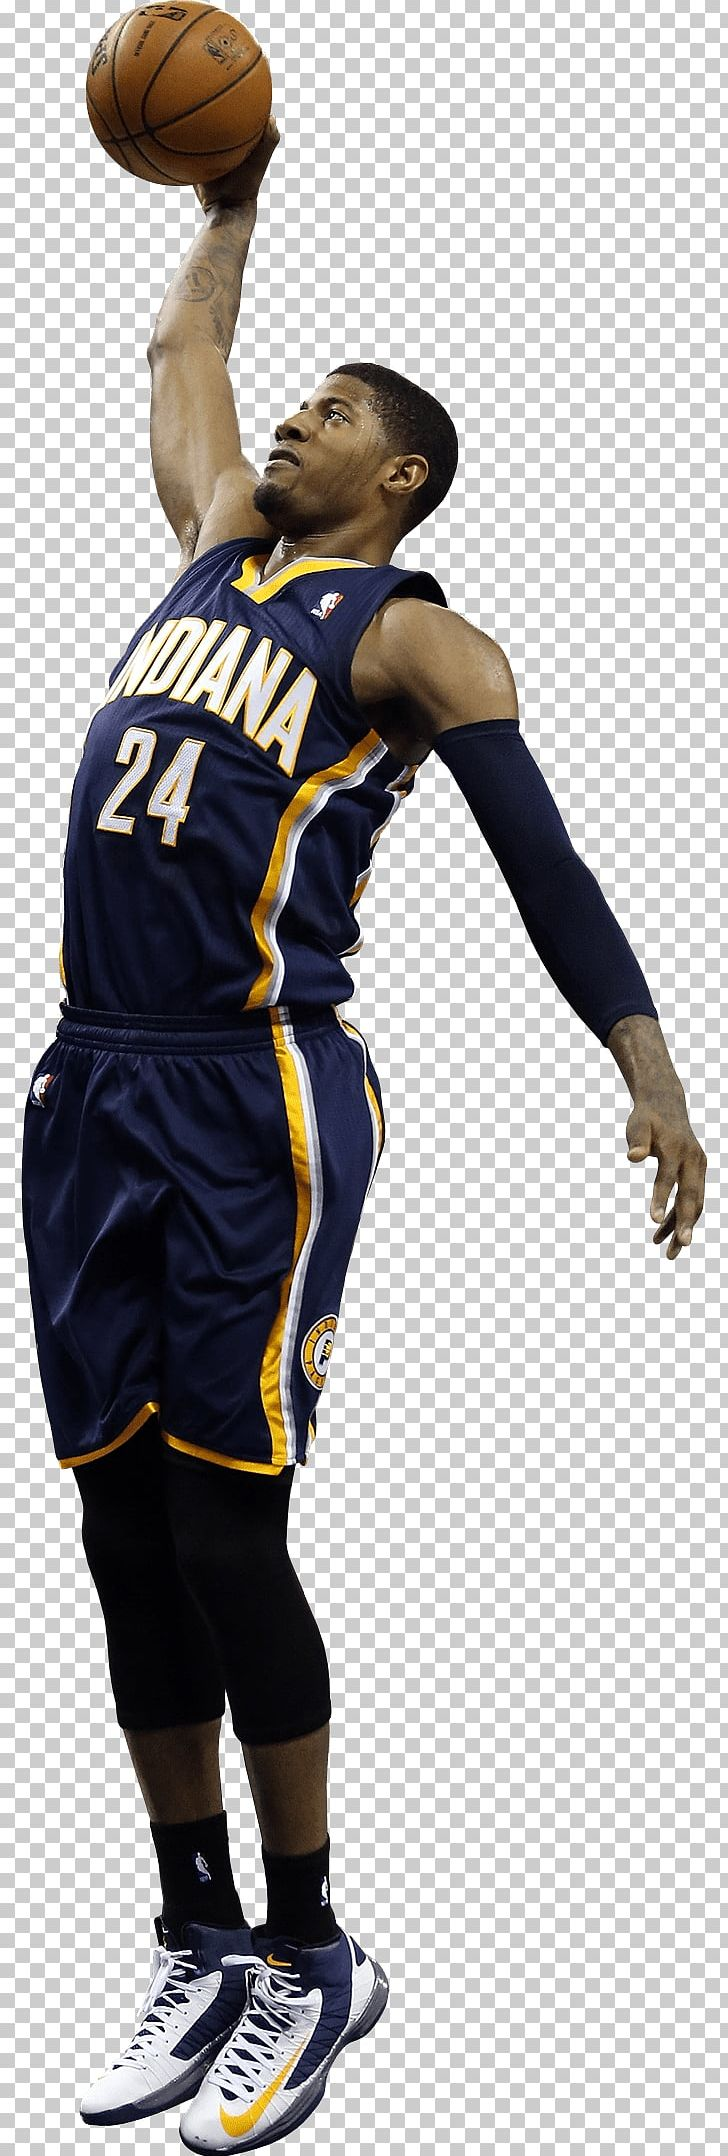 Paul George Indiana Pacers Basketball Slam Dunk PNG, Clipart, Ball Game, Basketball, Basketball Player, Competition Event, Indiana Pacers Free PNG Download